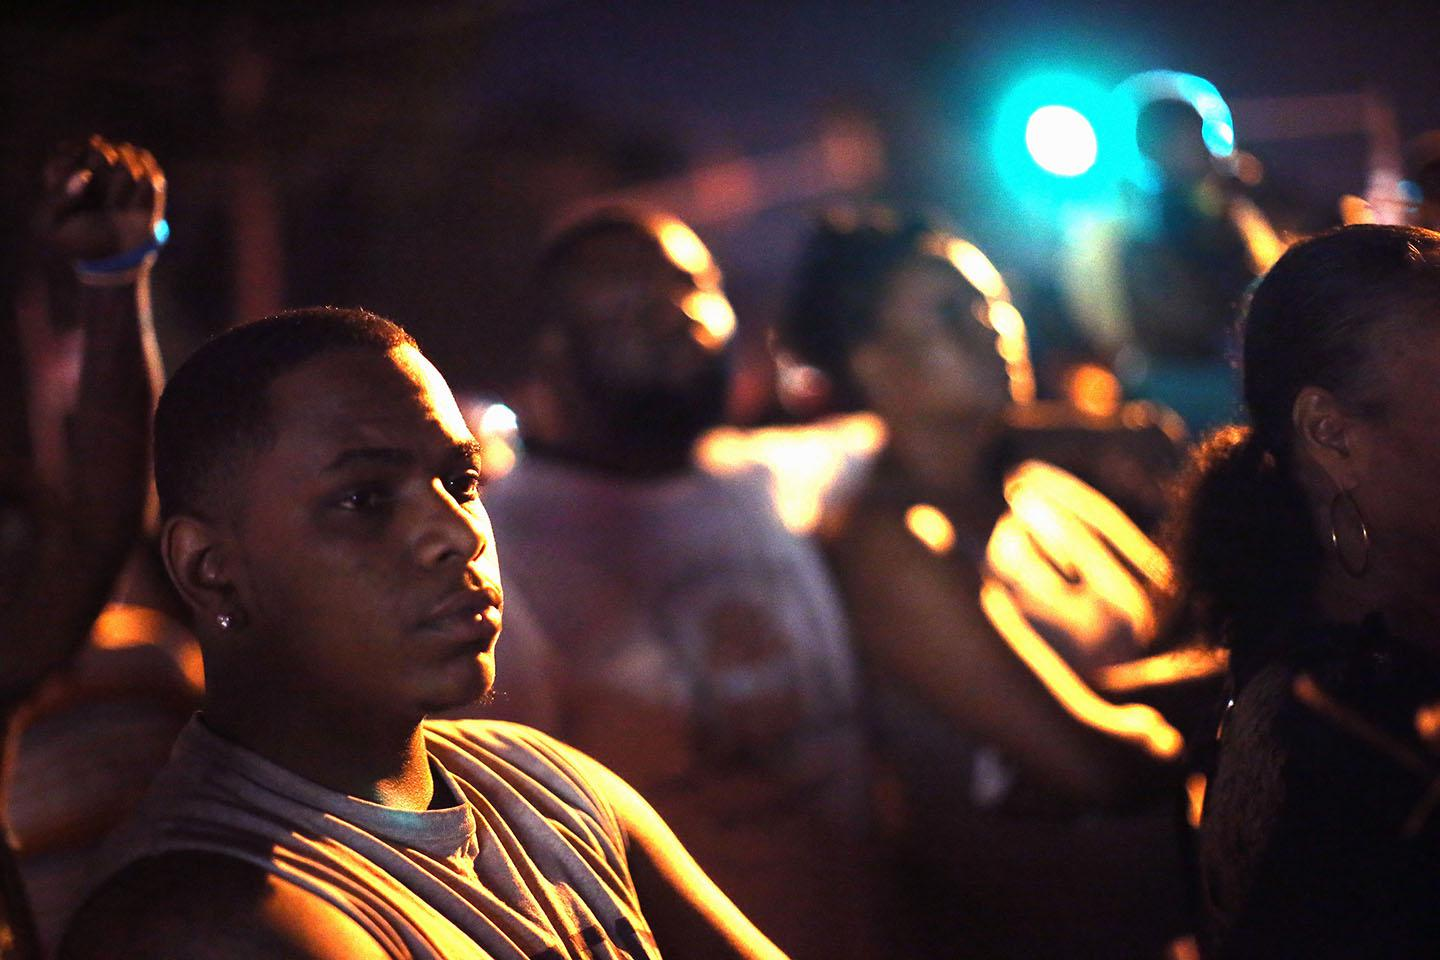 Demonstrators protest the killing of teenager Michael Brown.